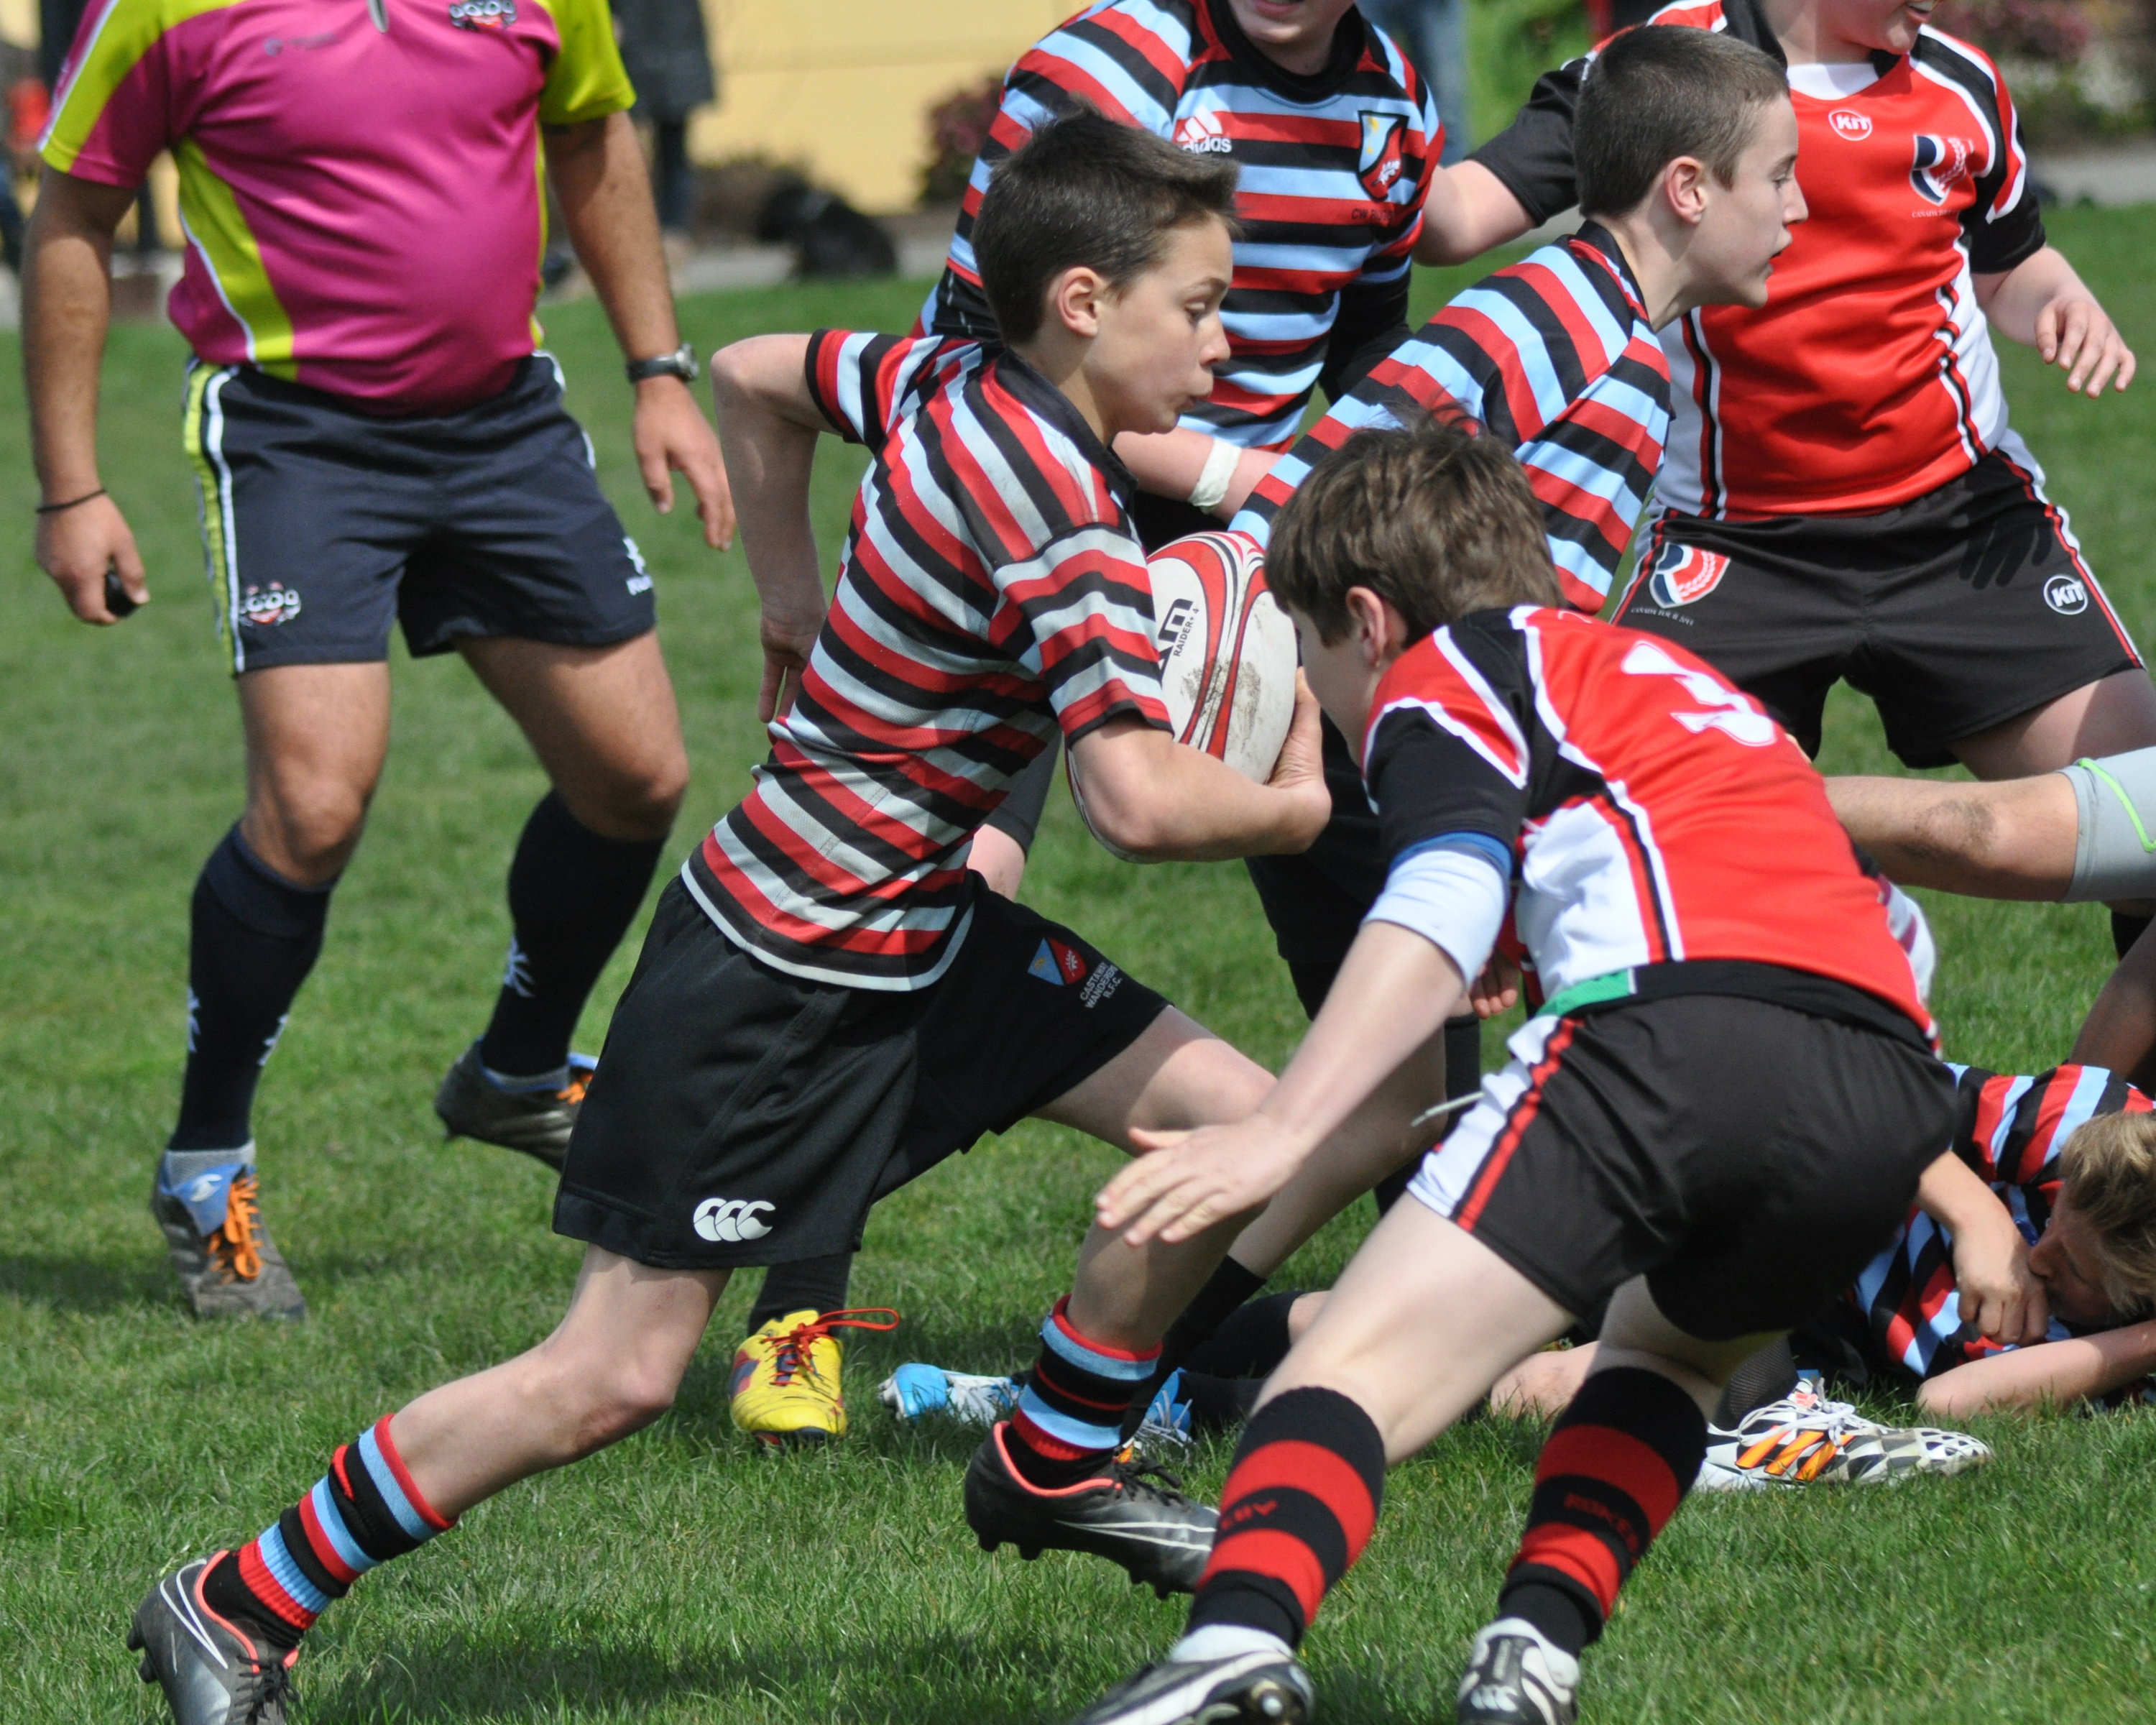 Rugby Resumes - Image 1